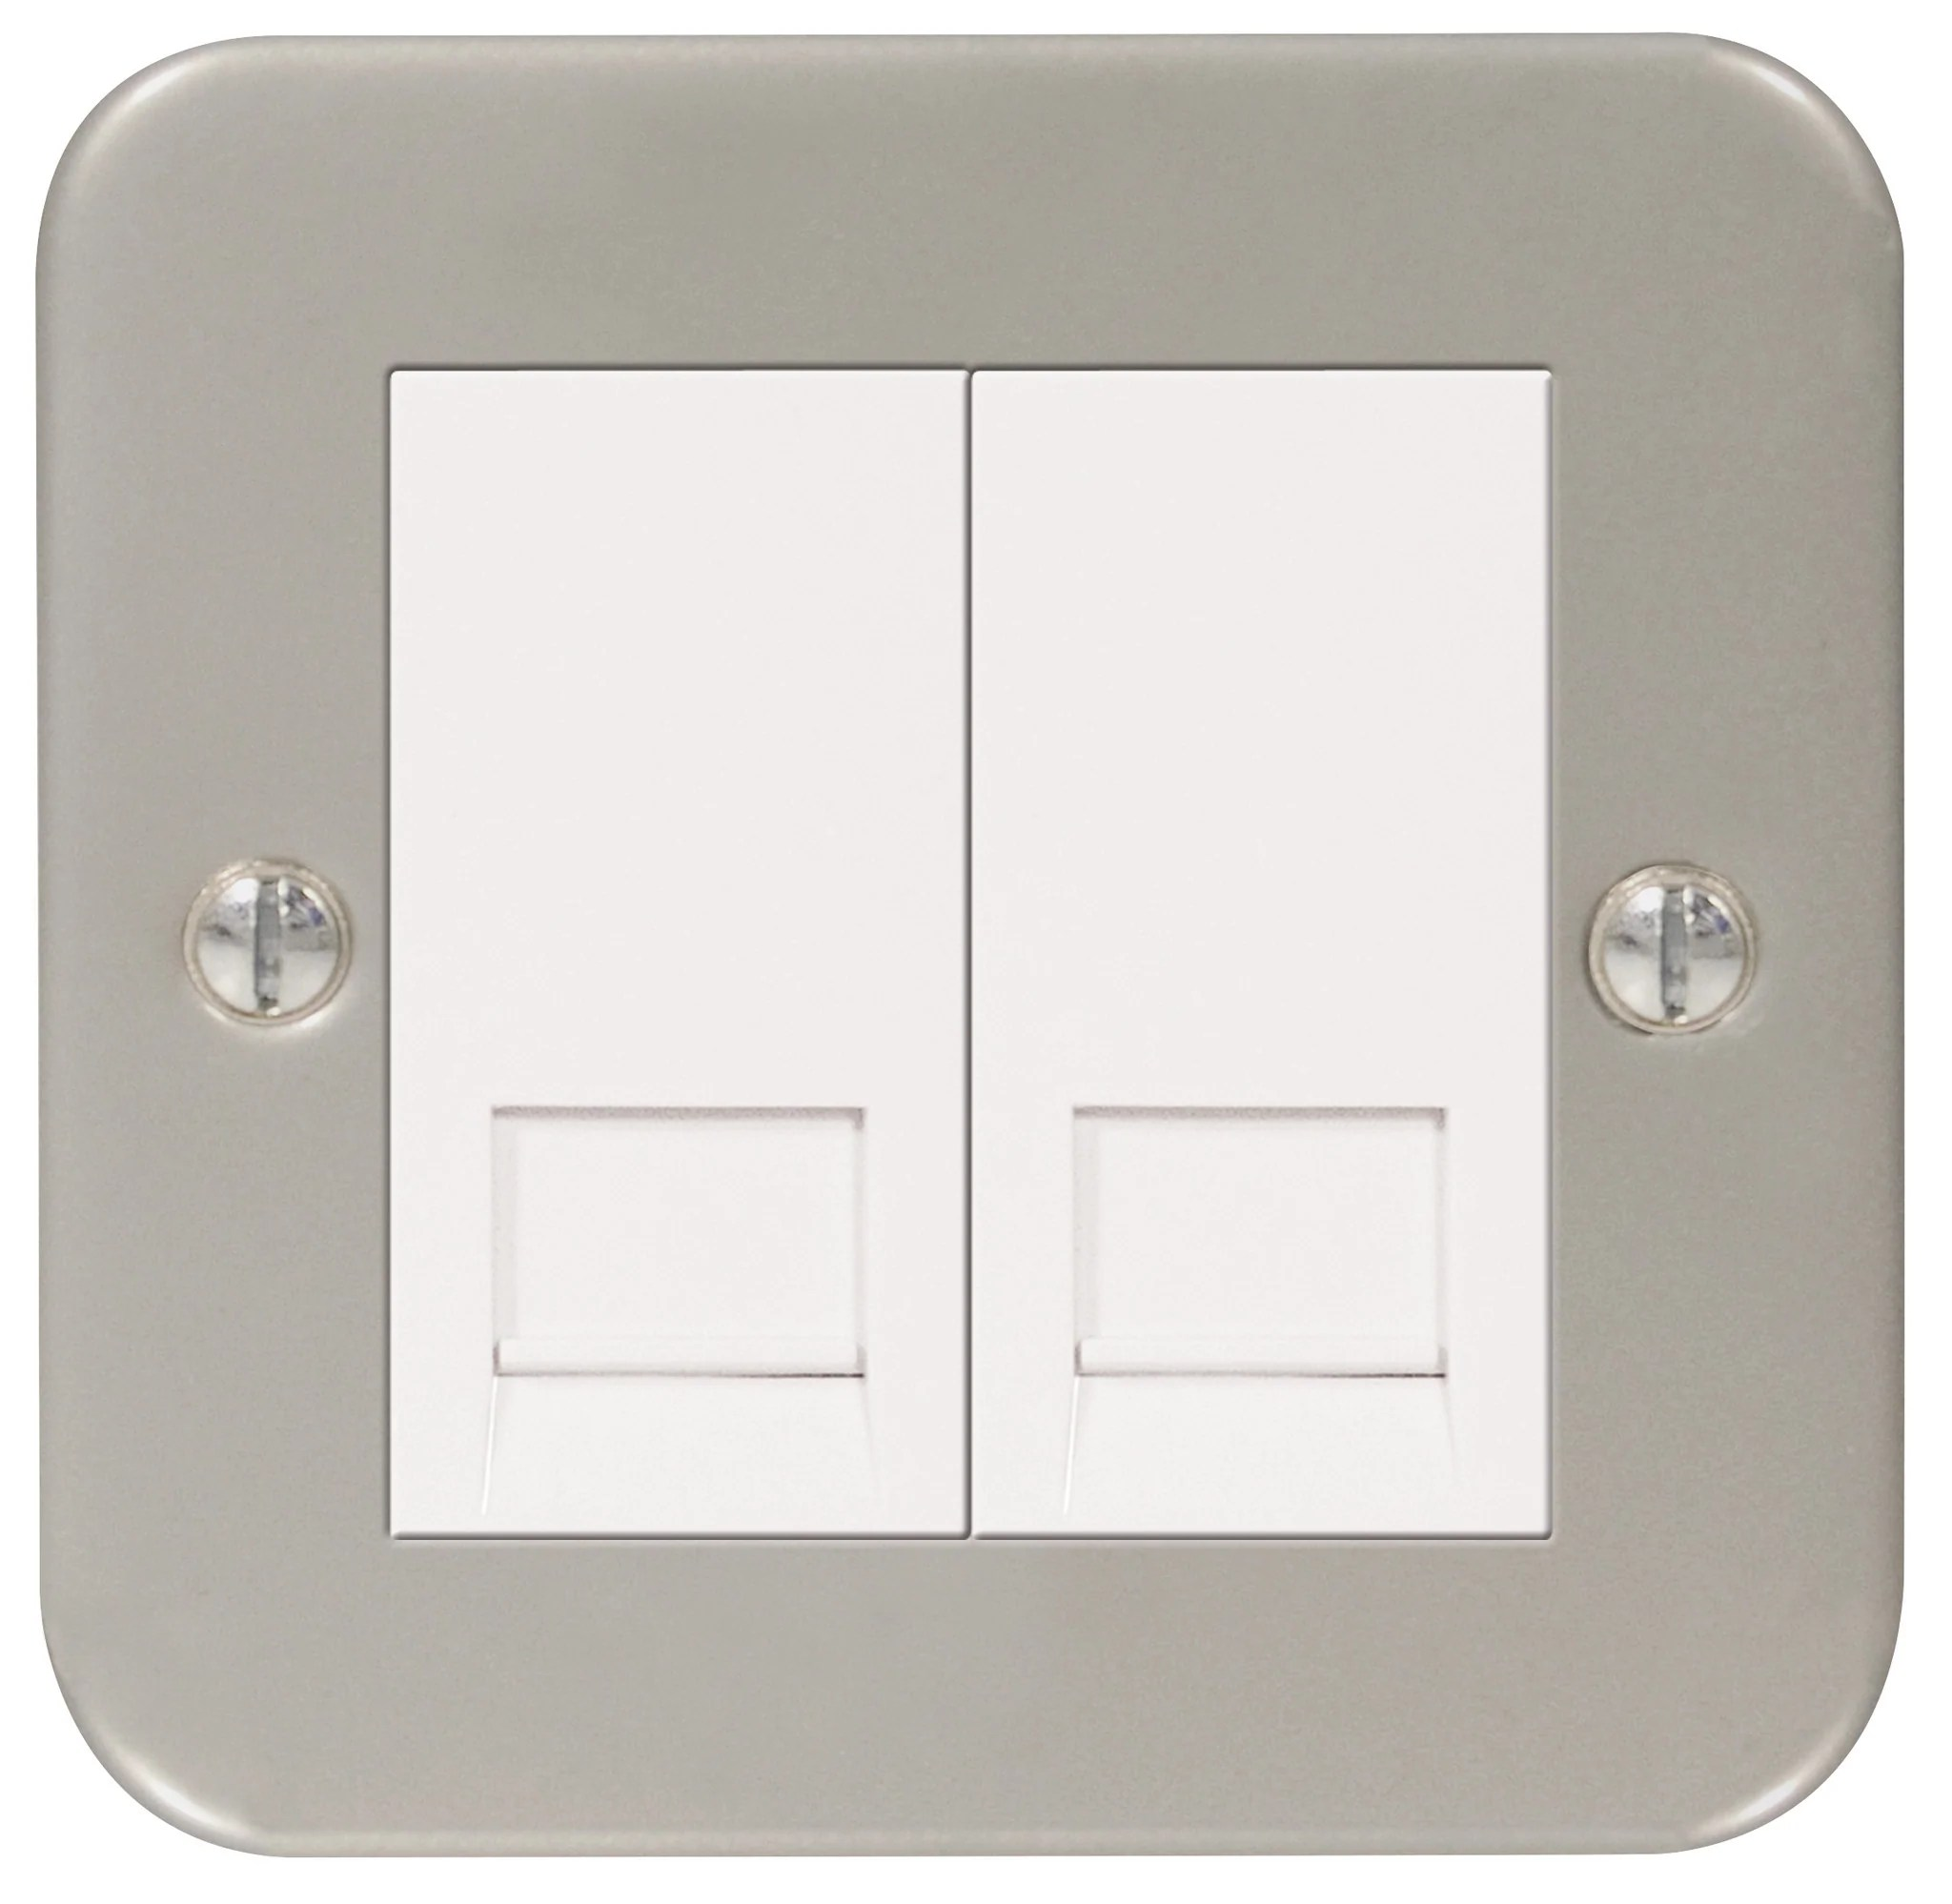 small resolution of category switches sockets